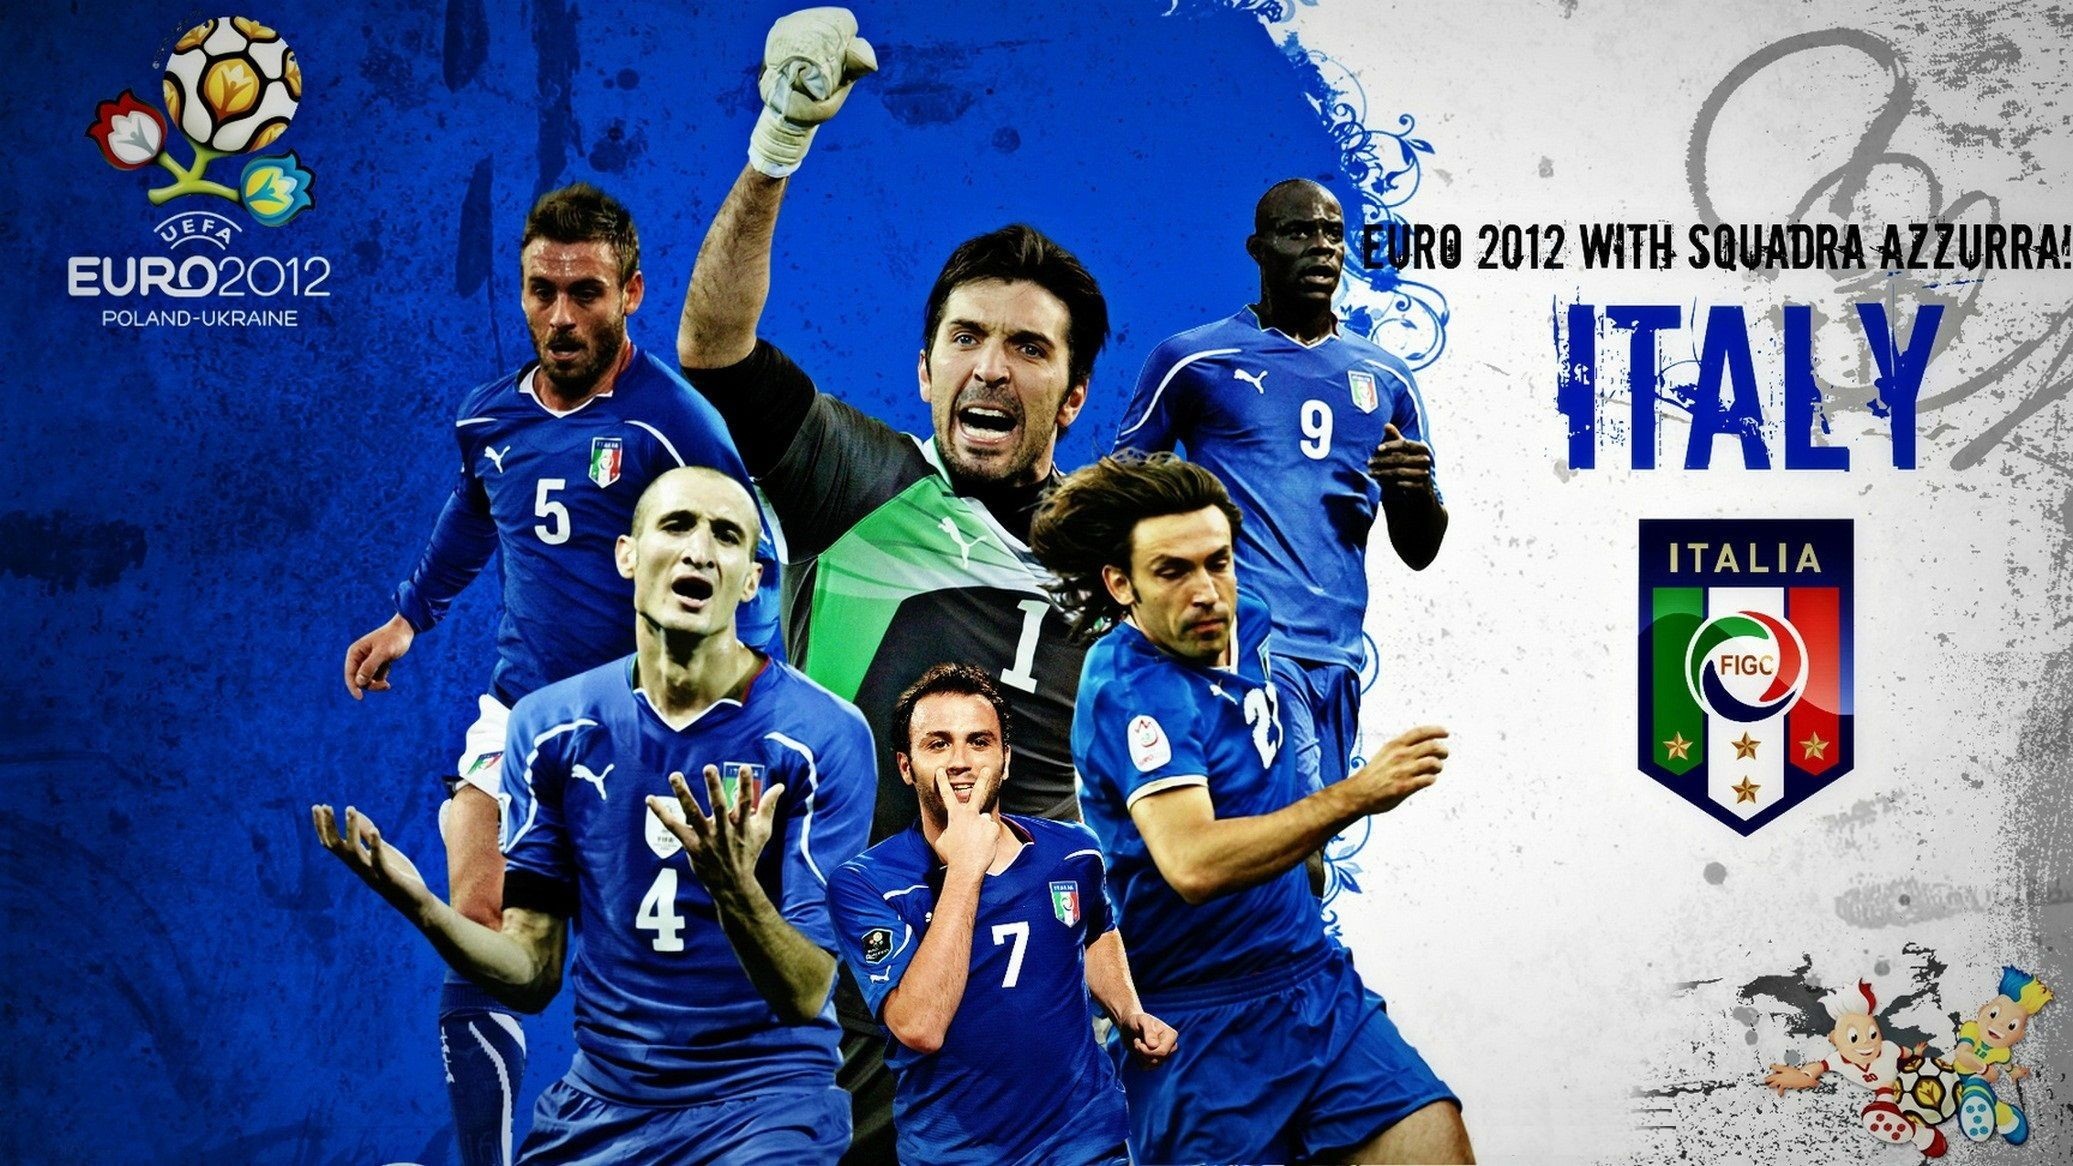 2073x1166 Italy National Football Team Wallpapers Find best latest Italy National Football  Team Wallpapers for your PC